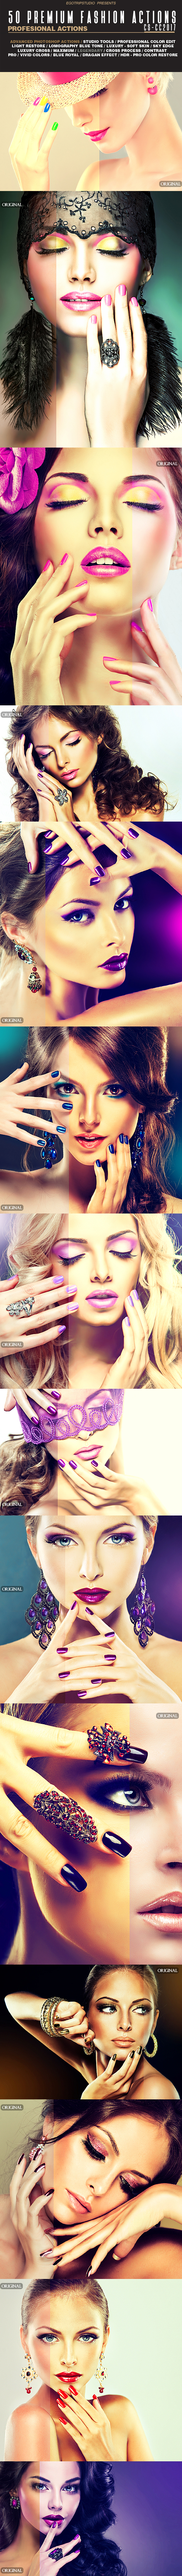 GraphicRiver Photoshop Photo Effect 20489502